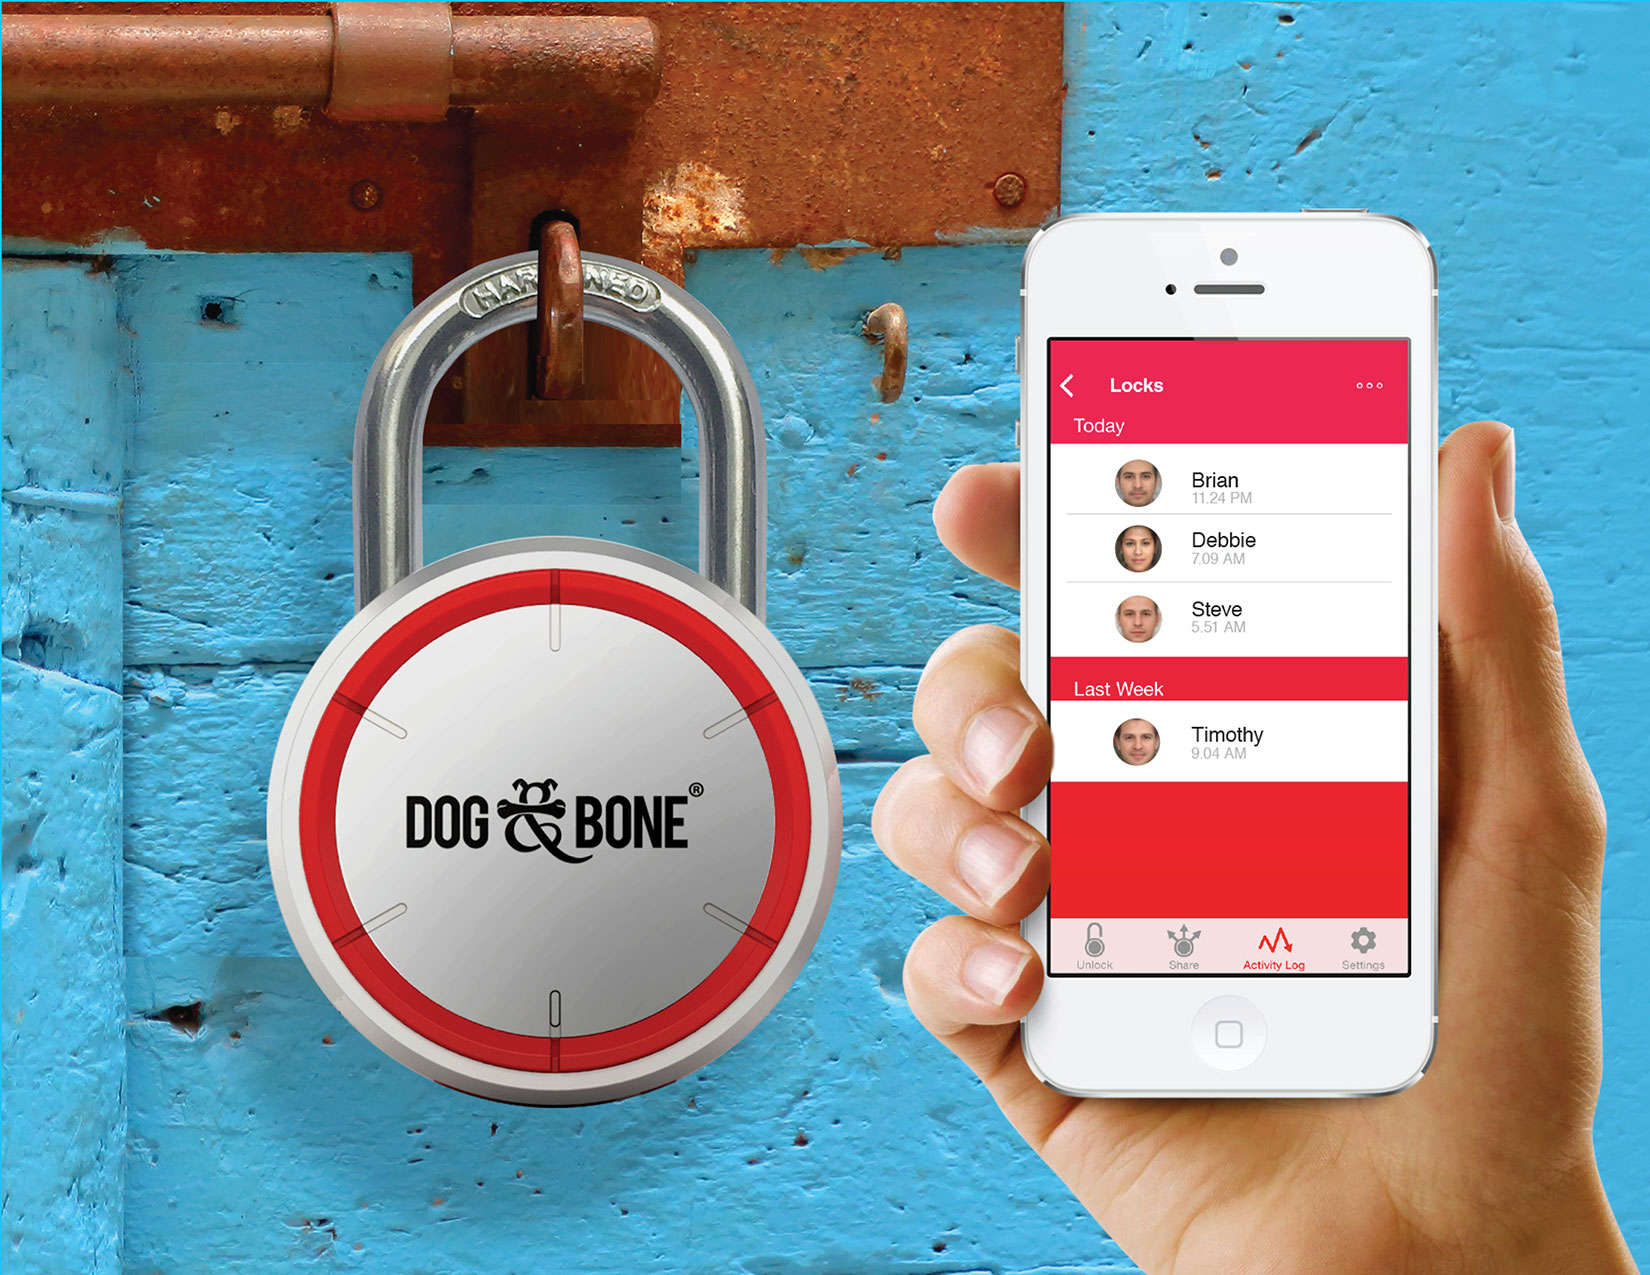 The LockSmart is secured thanks to Bluetooth with 128-bit encryption.